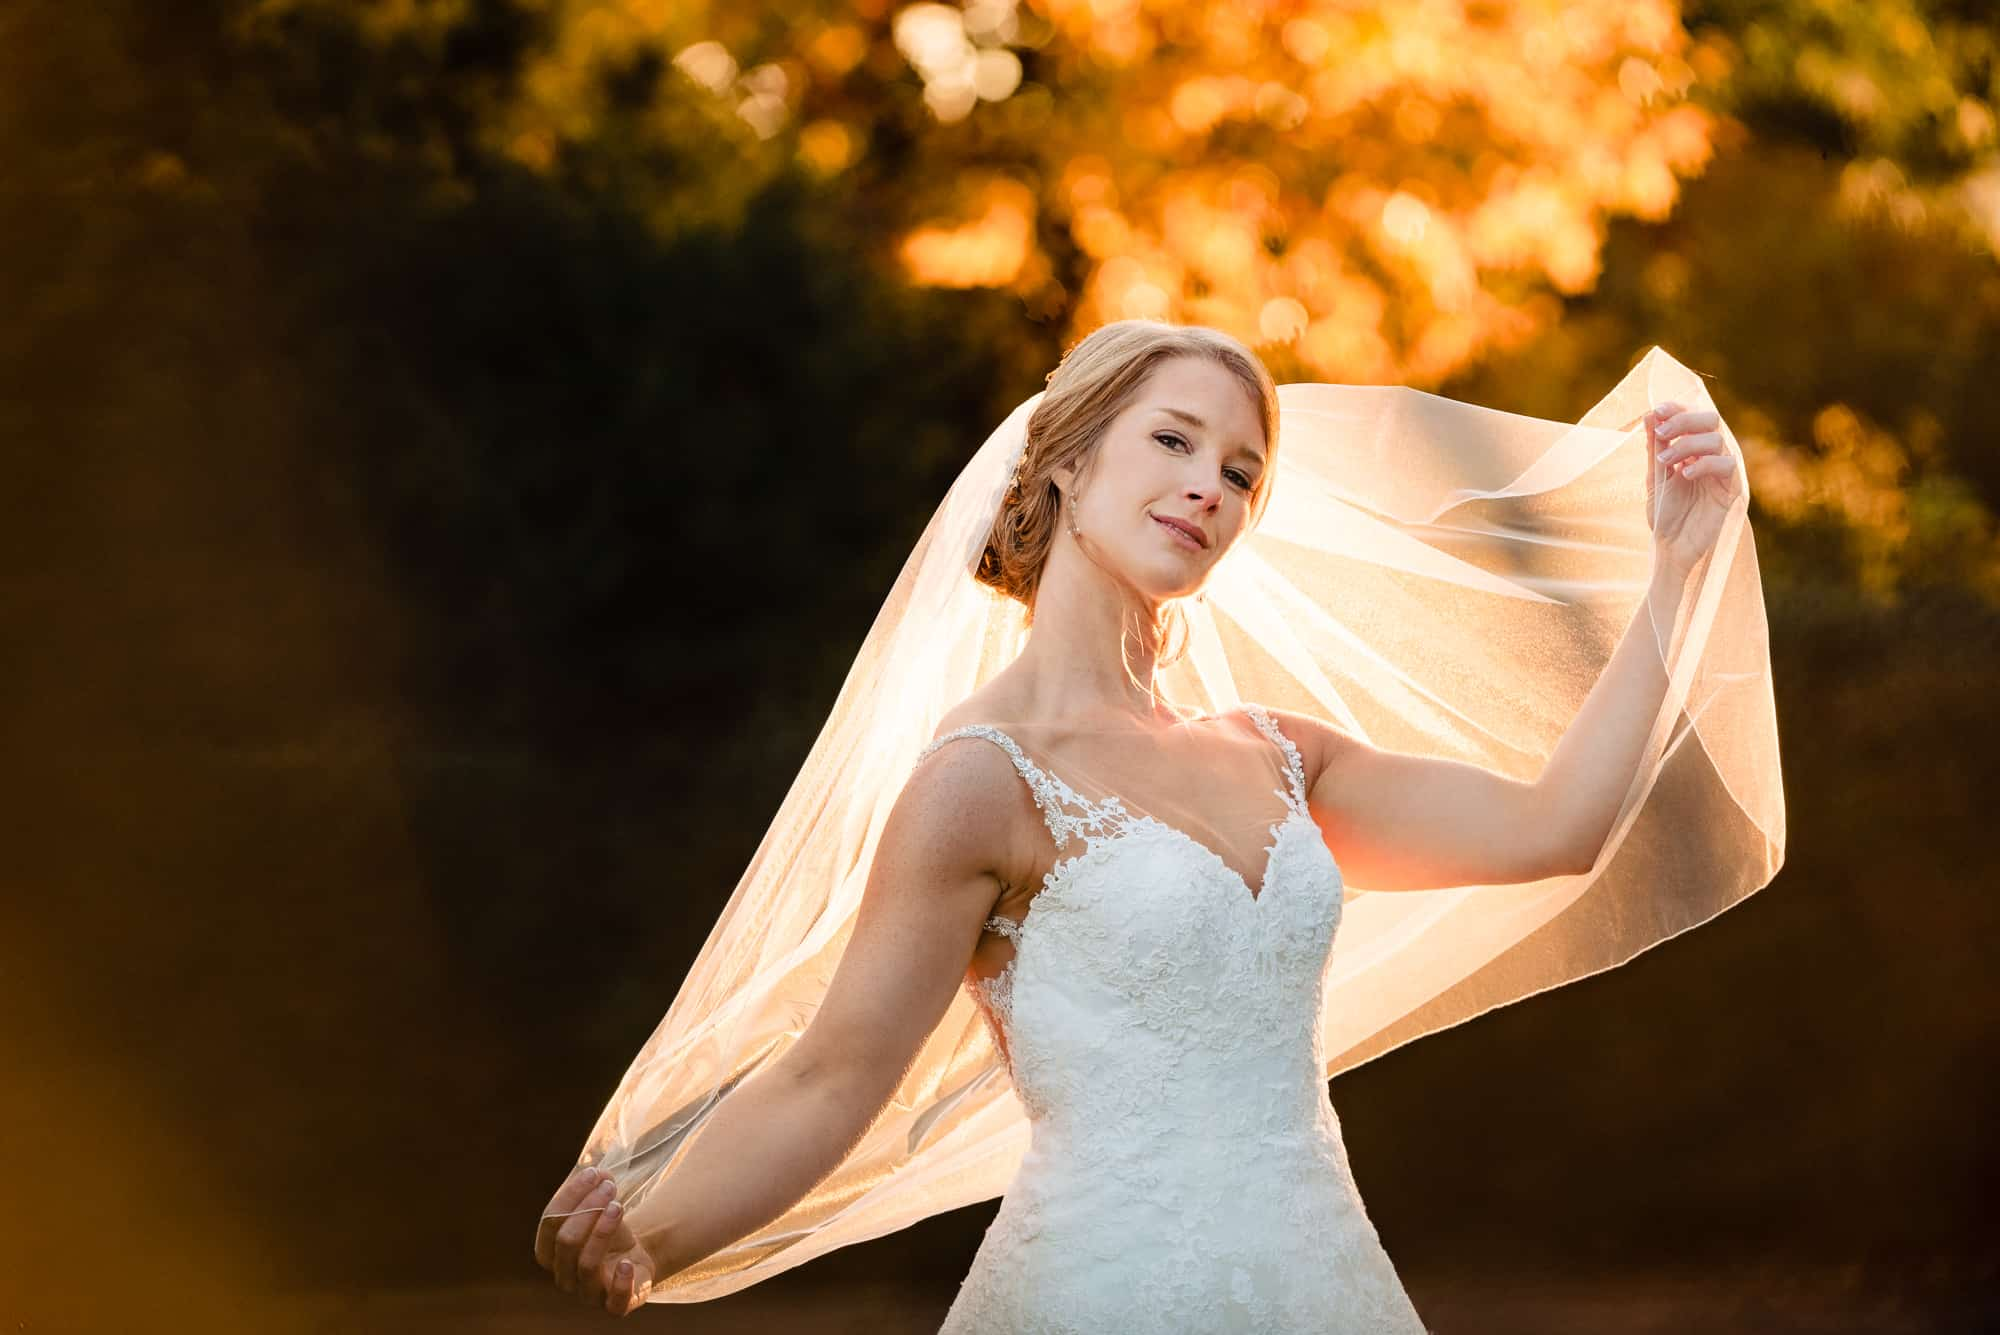 Bride playing with her veil at sunset